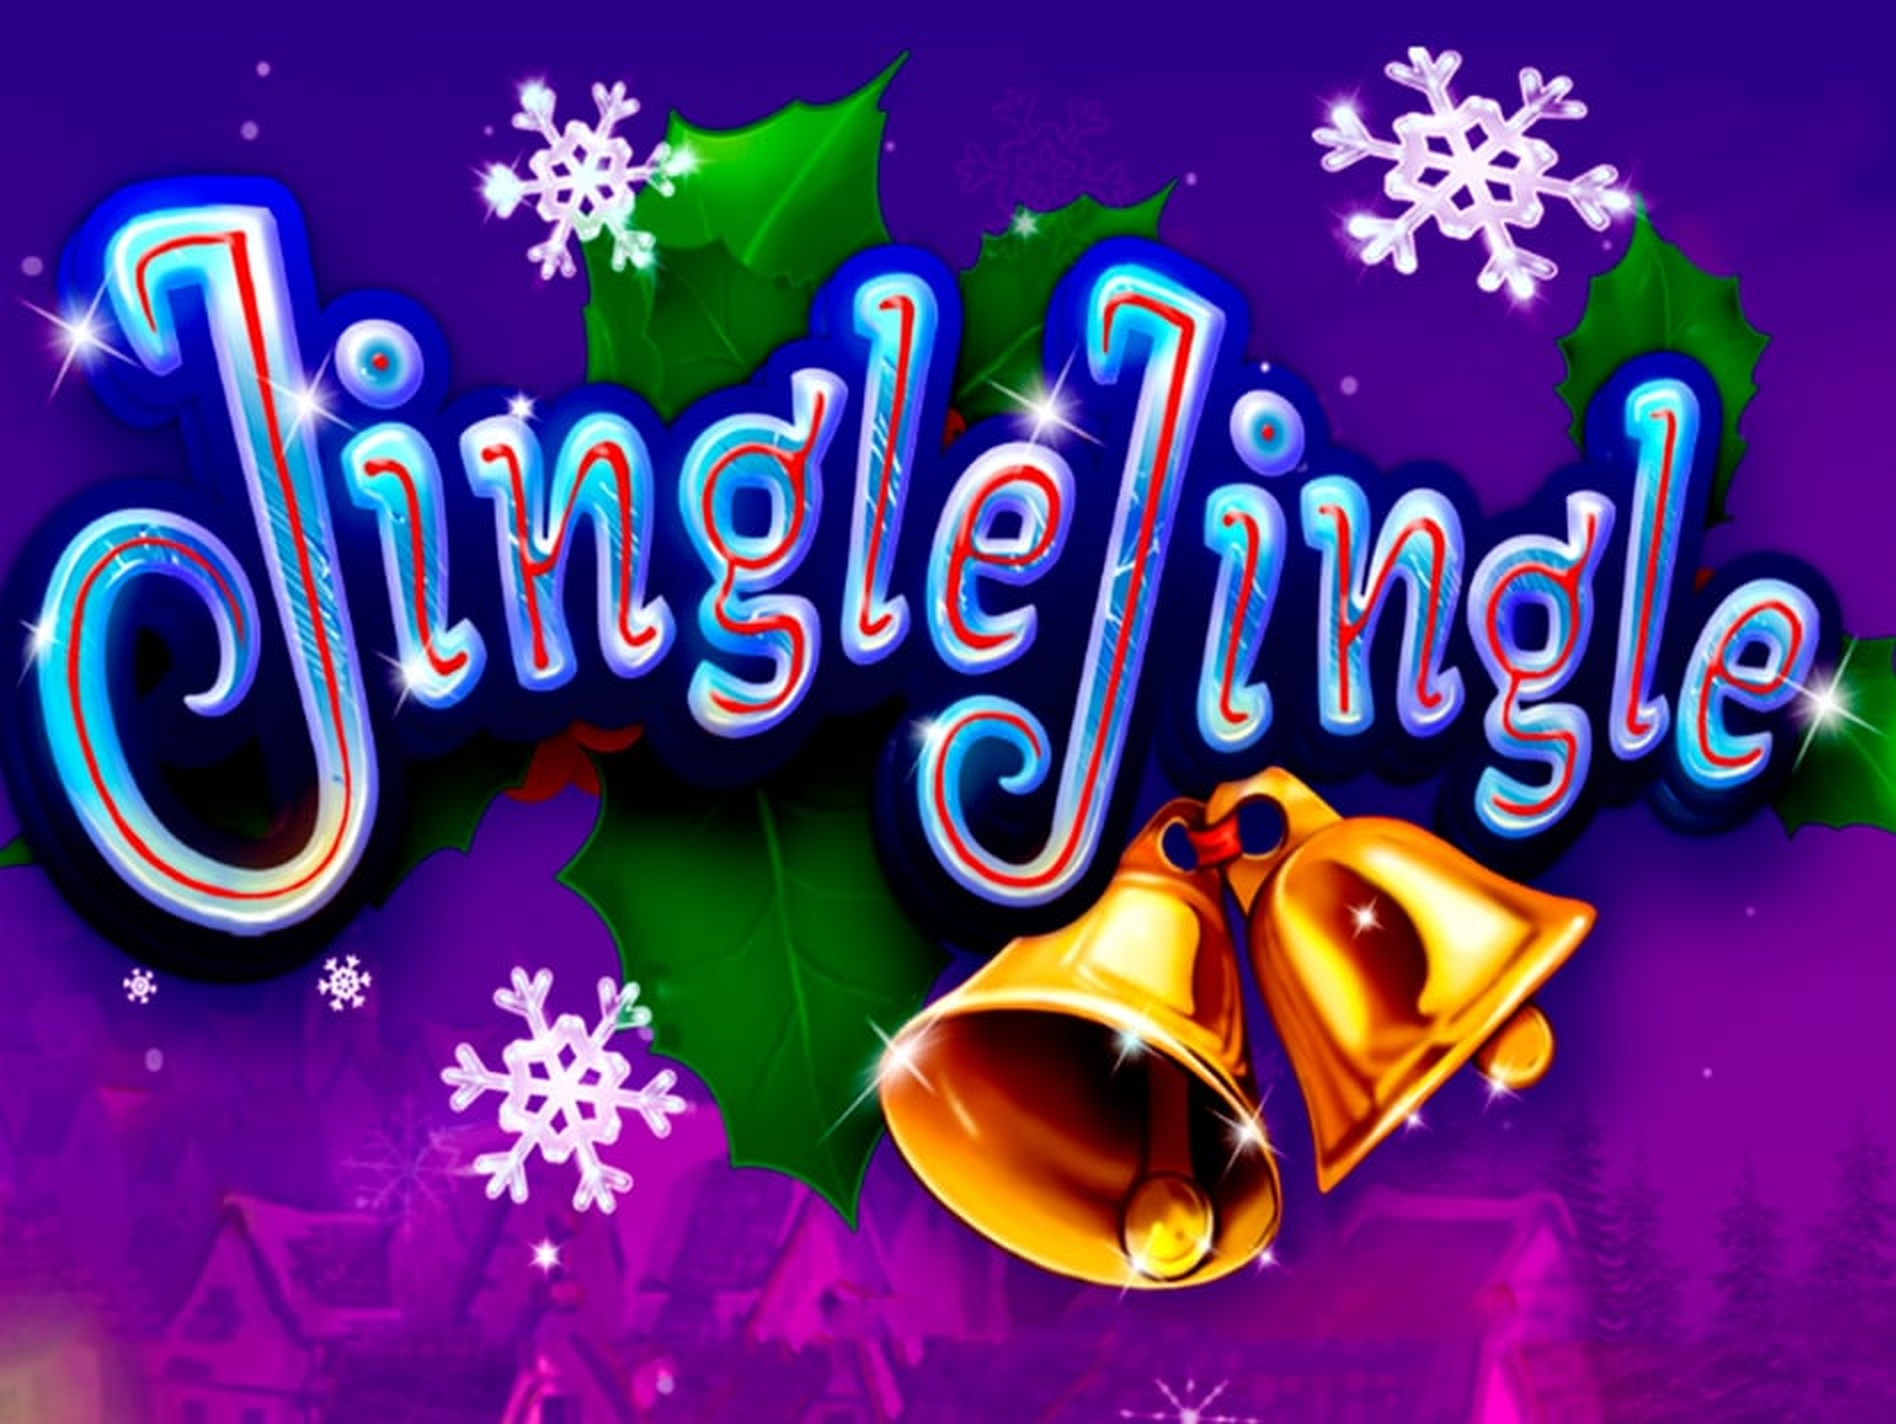 The Jingle Jingle Online Slot Demo Game by Booming Games